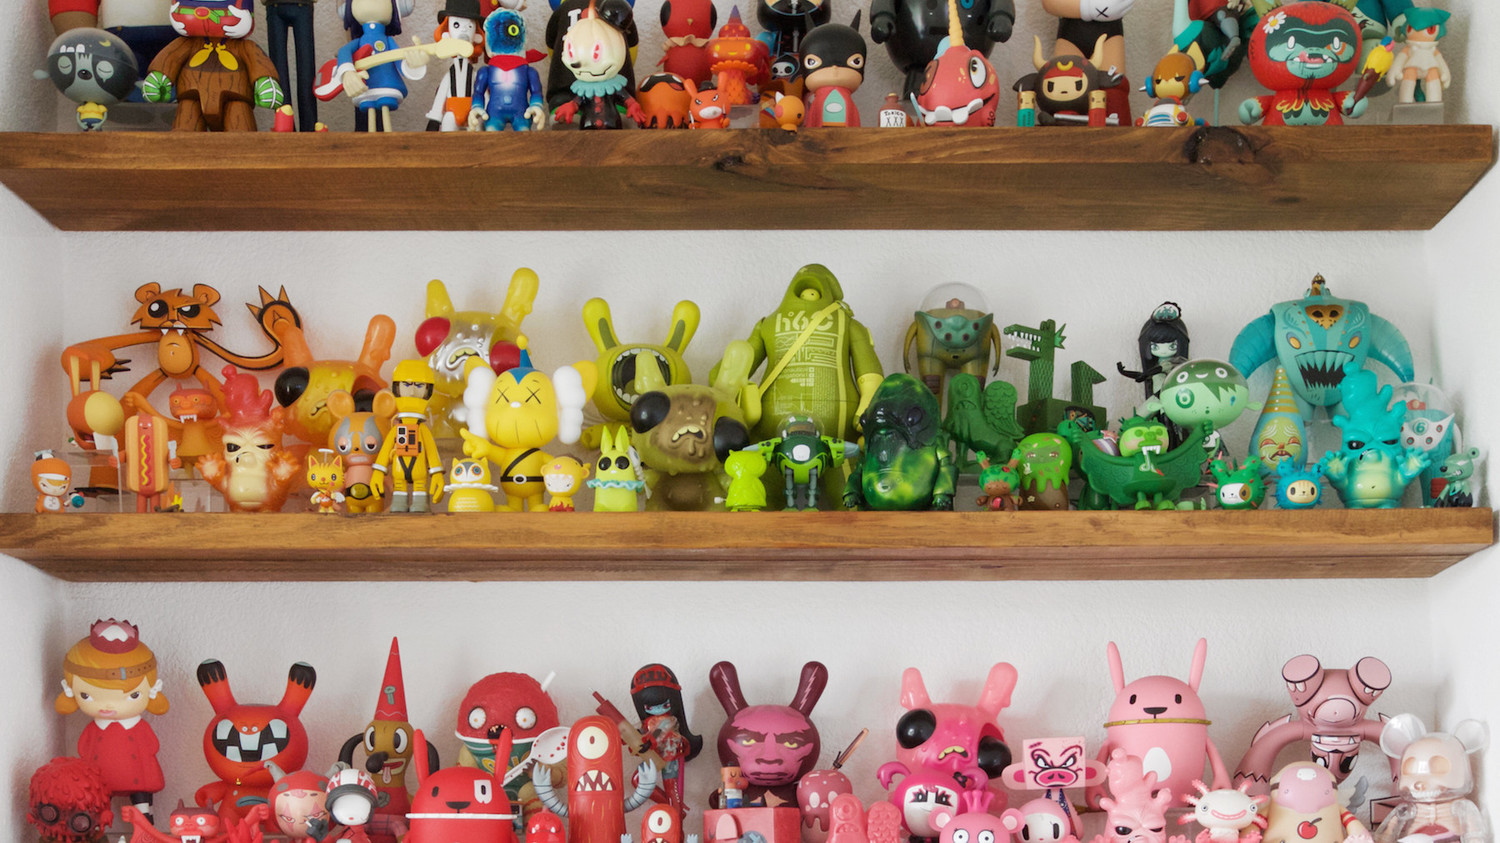 Sara Harvey S Modern Toy Collection Is A Whimsical